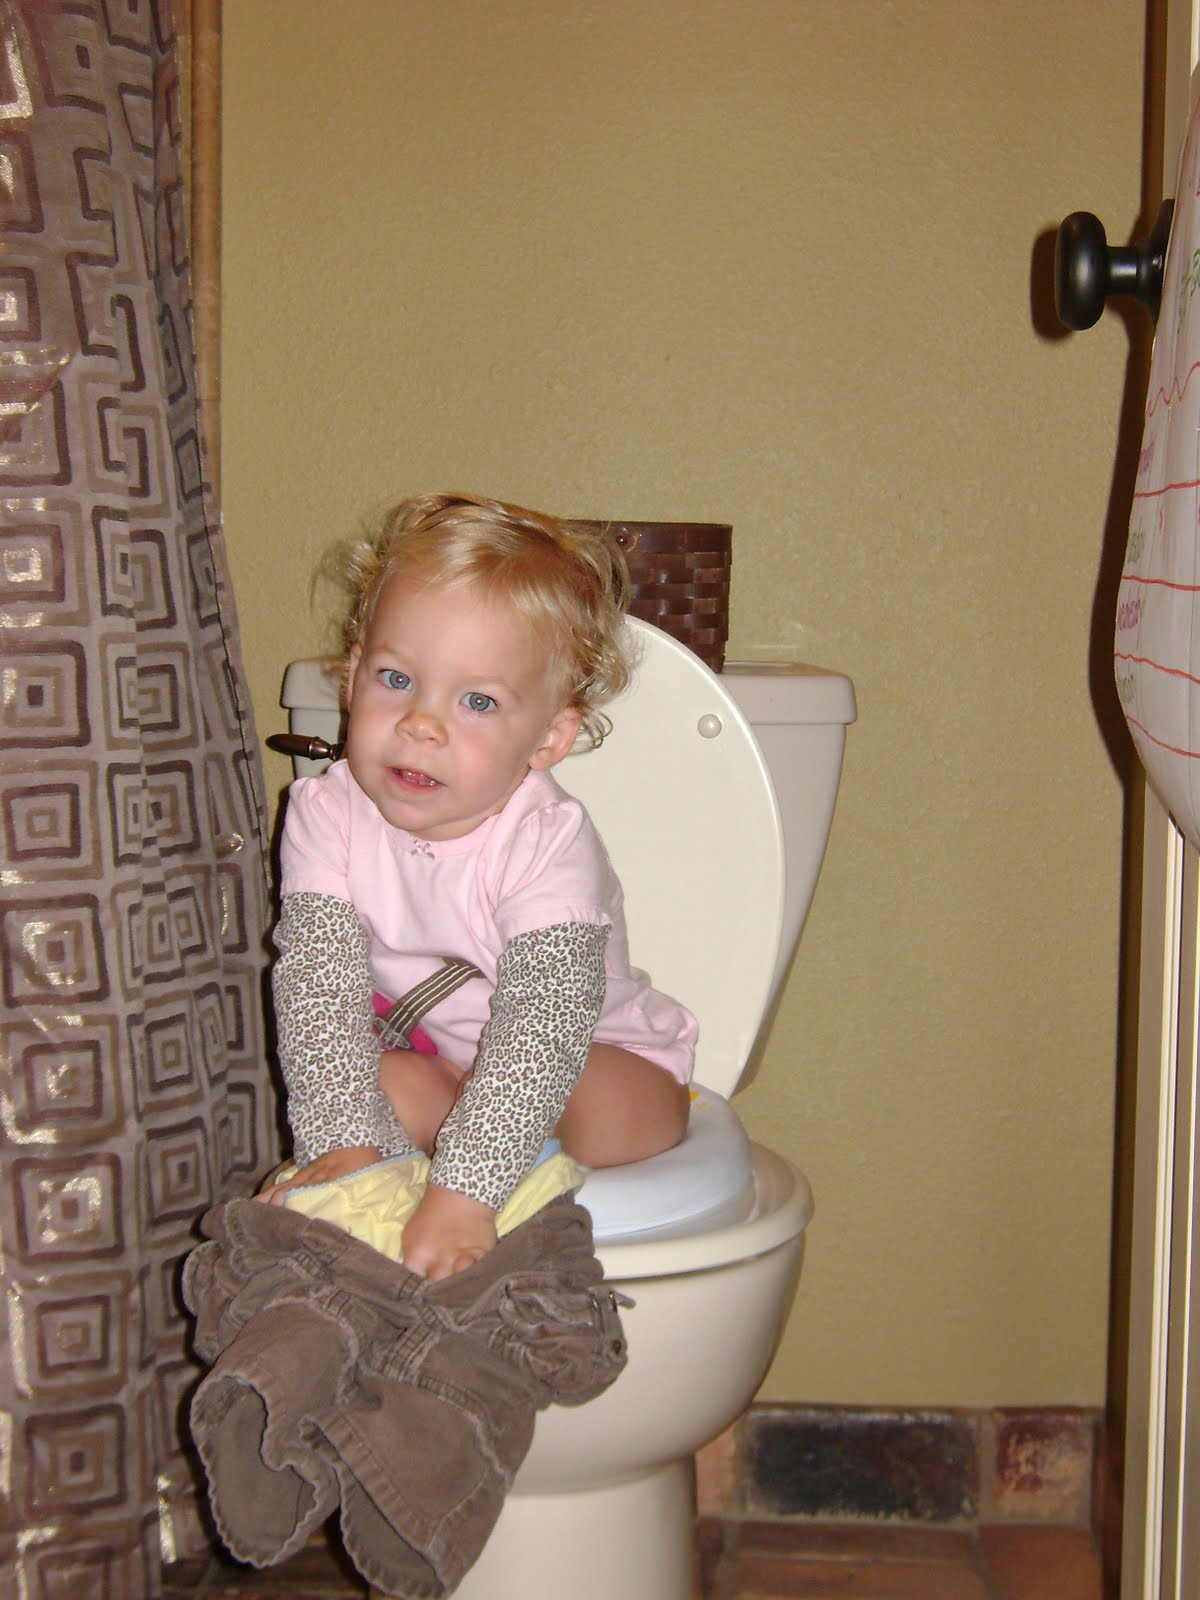 Potty trained toddler suddenly wetting bed frame